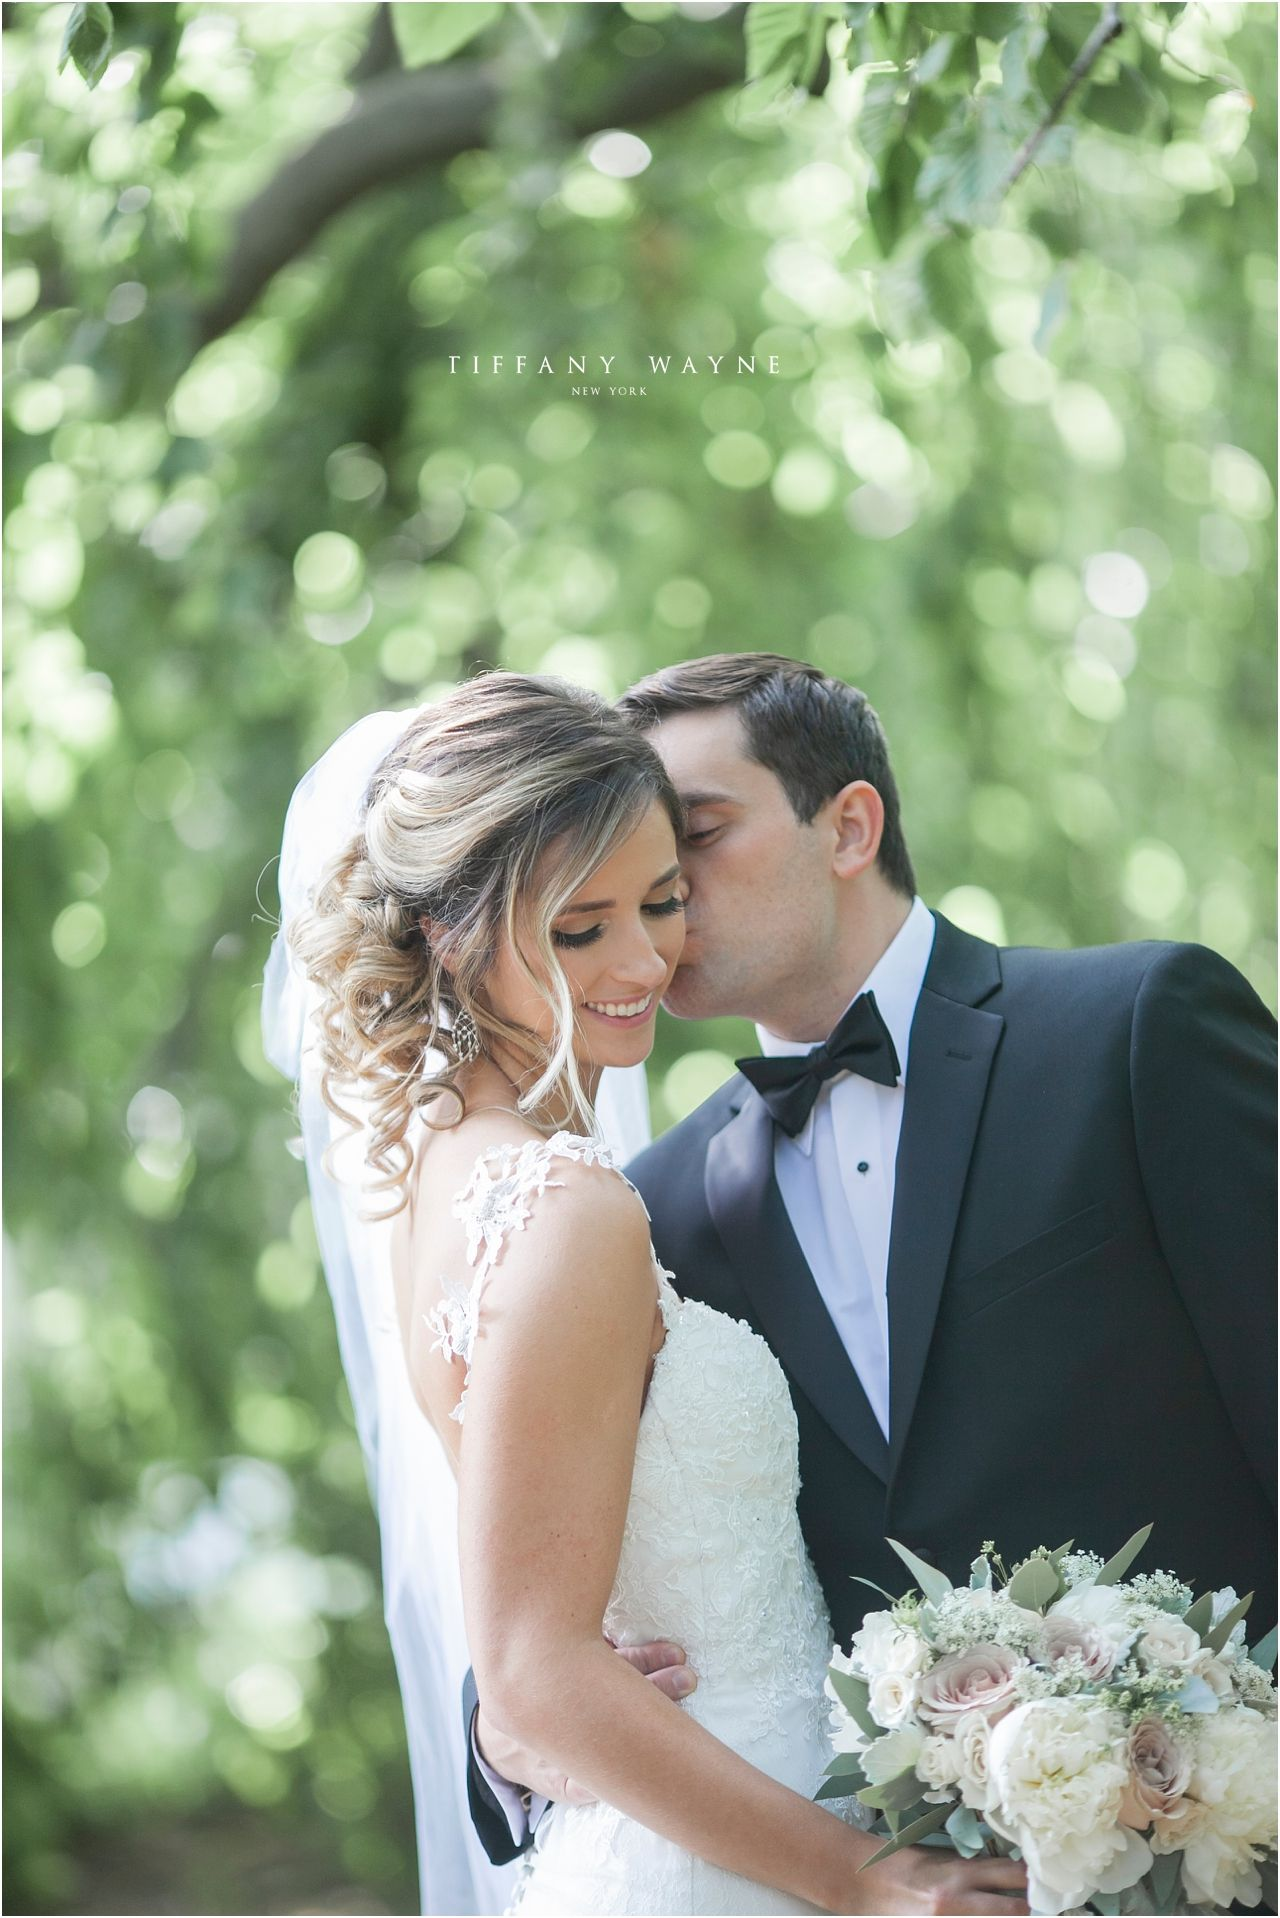 Bride And Groom Wedding Photography Outside Groom Kissing Bride Photos Bride And Groom Outdoor We Bride Photo Wedding Photography Bride Wedding Photography